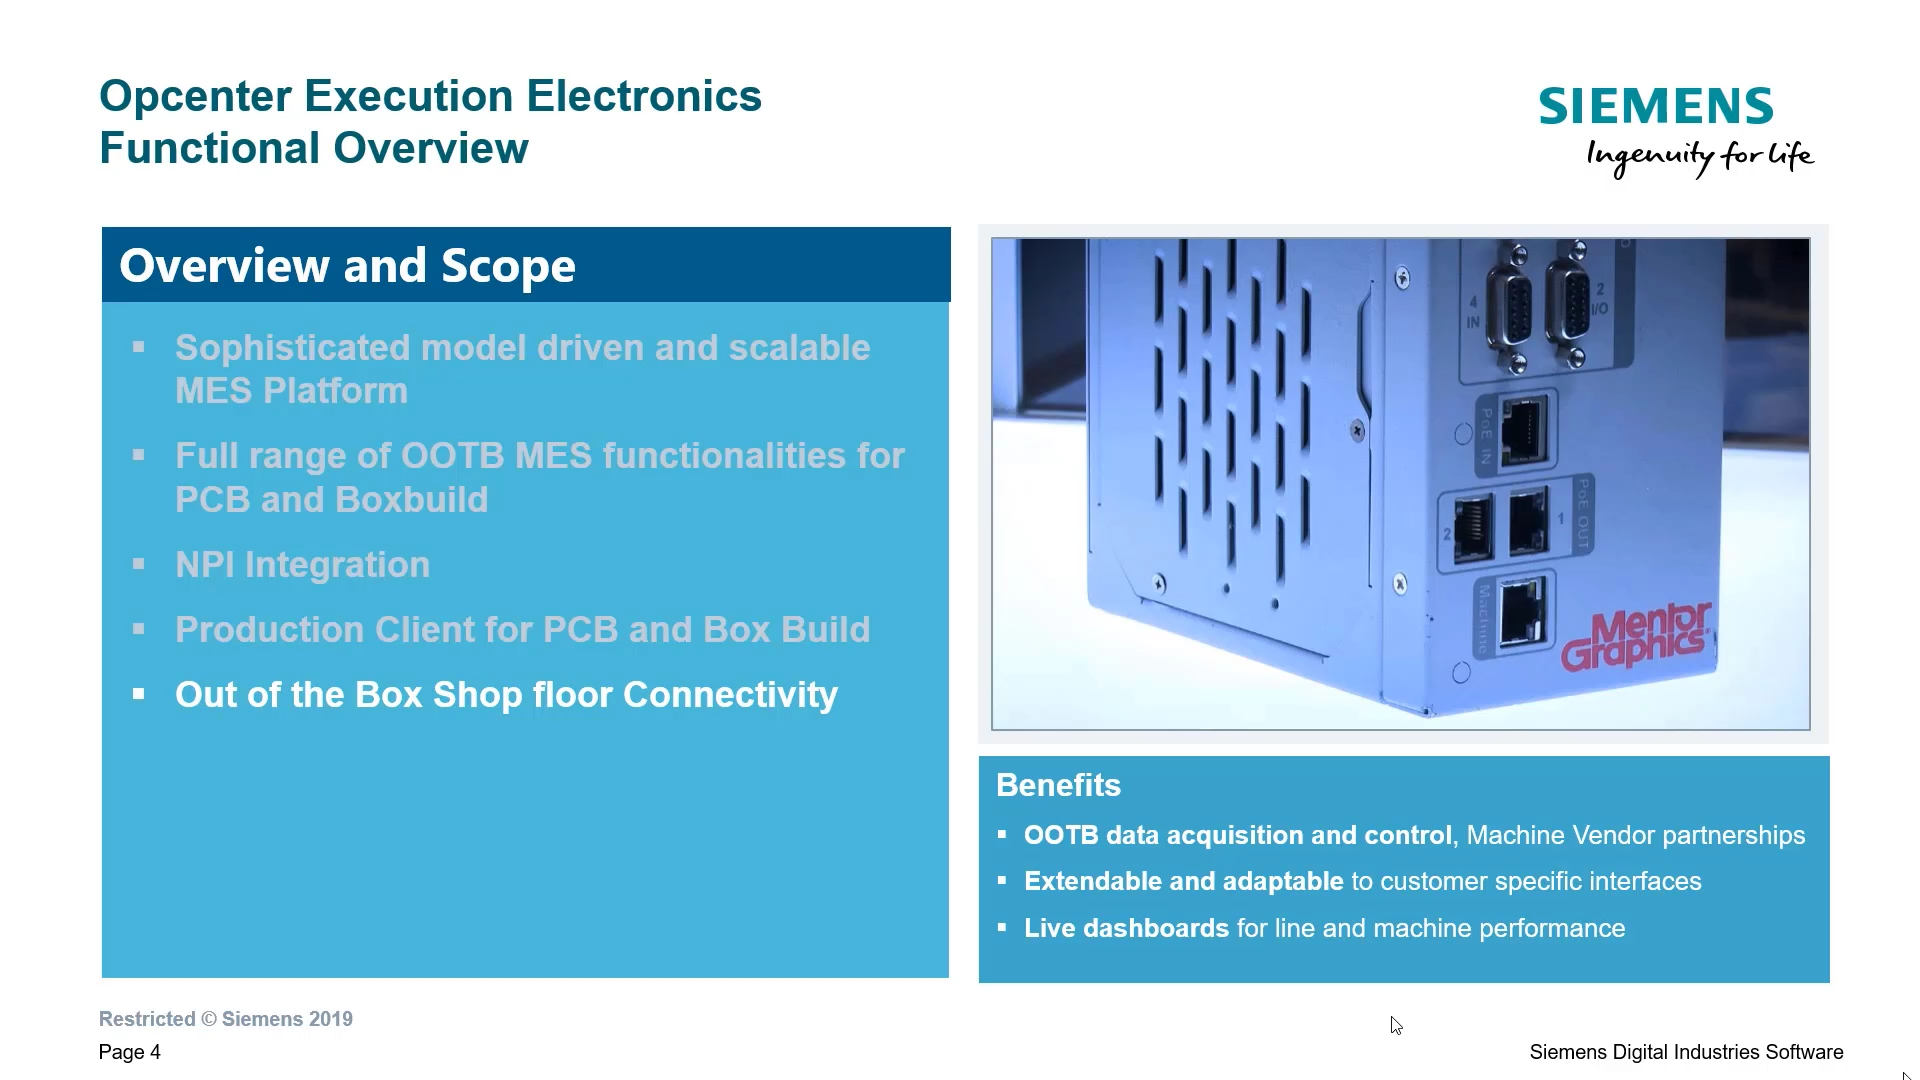 Opcenter Execution Electronics IoT Introduction cover image